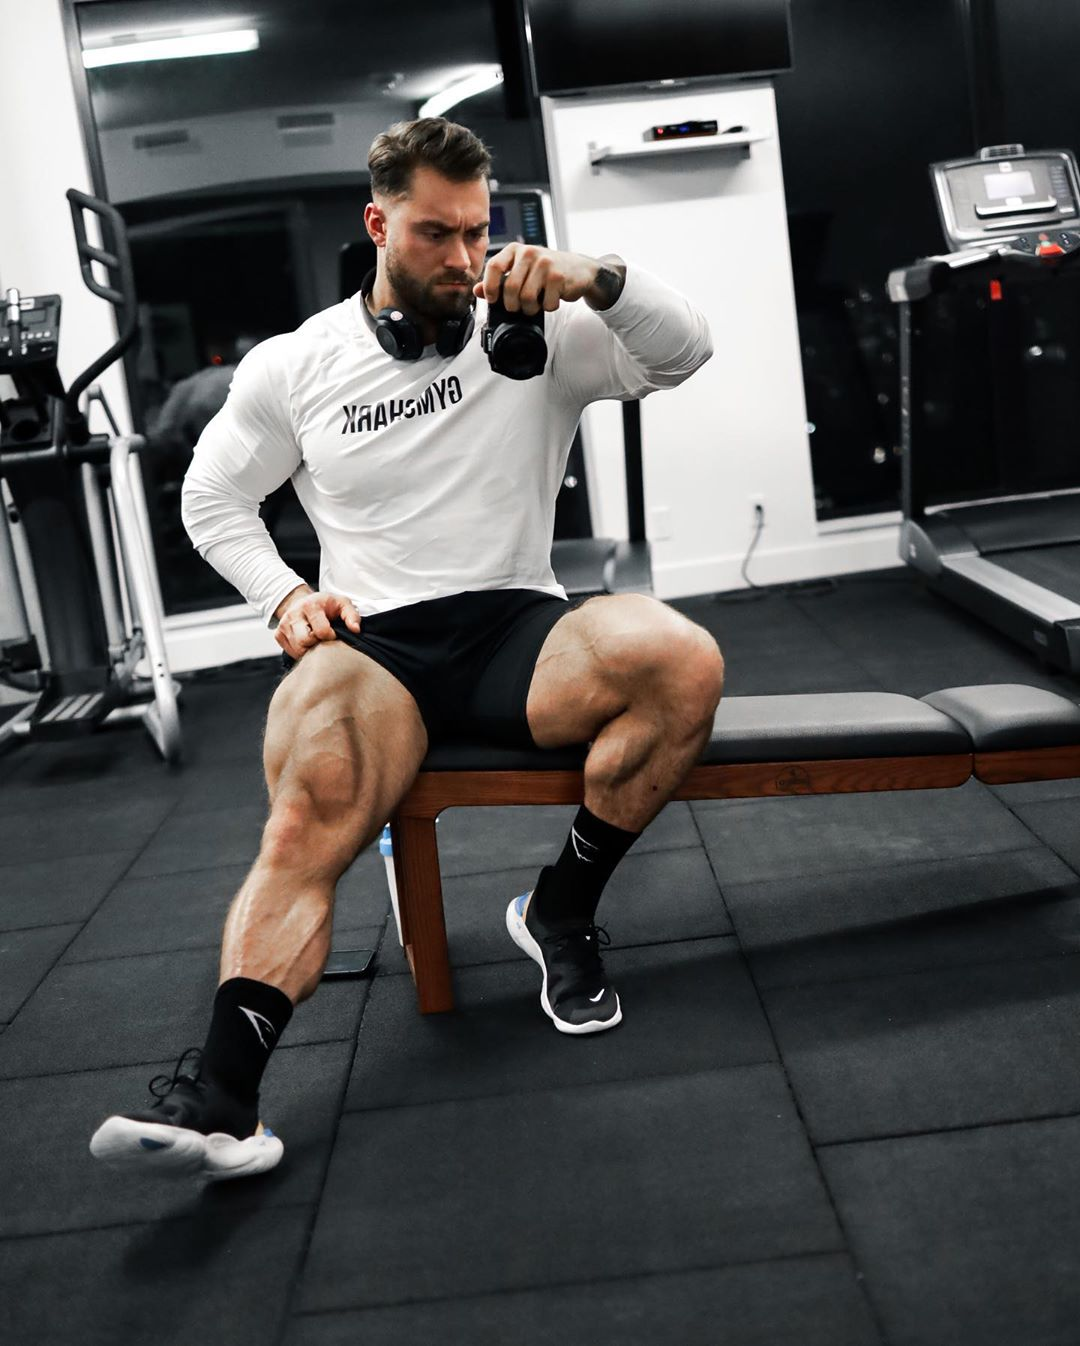 10 Best Quadriceps Exercises You Can Do At Home Without ...